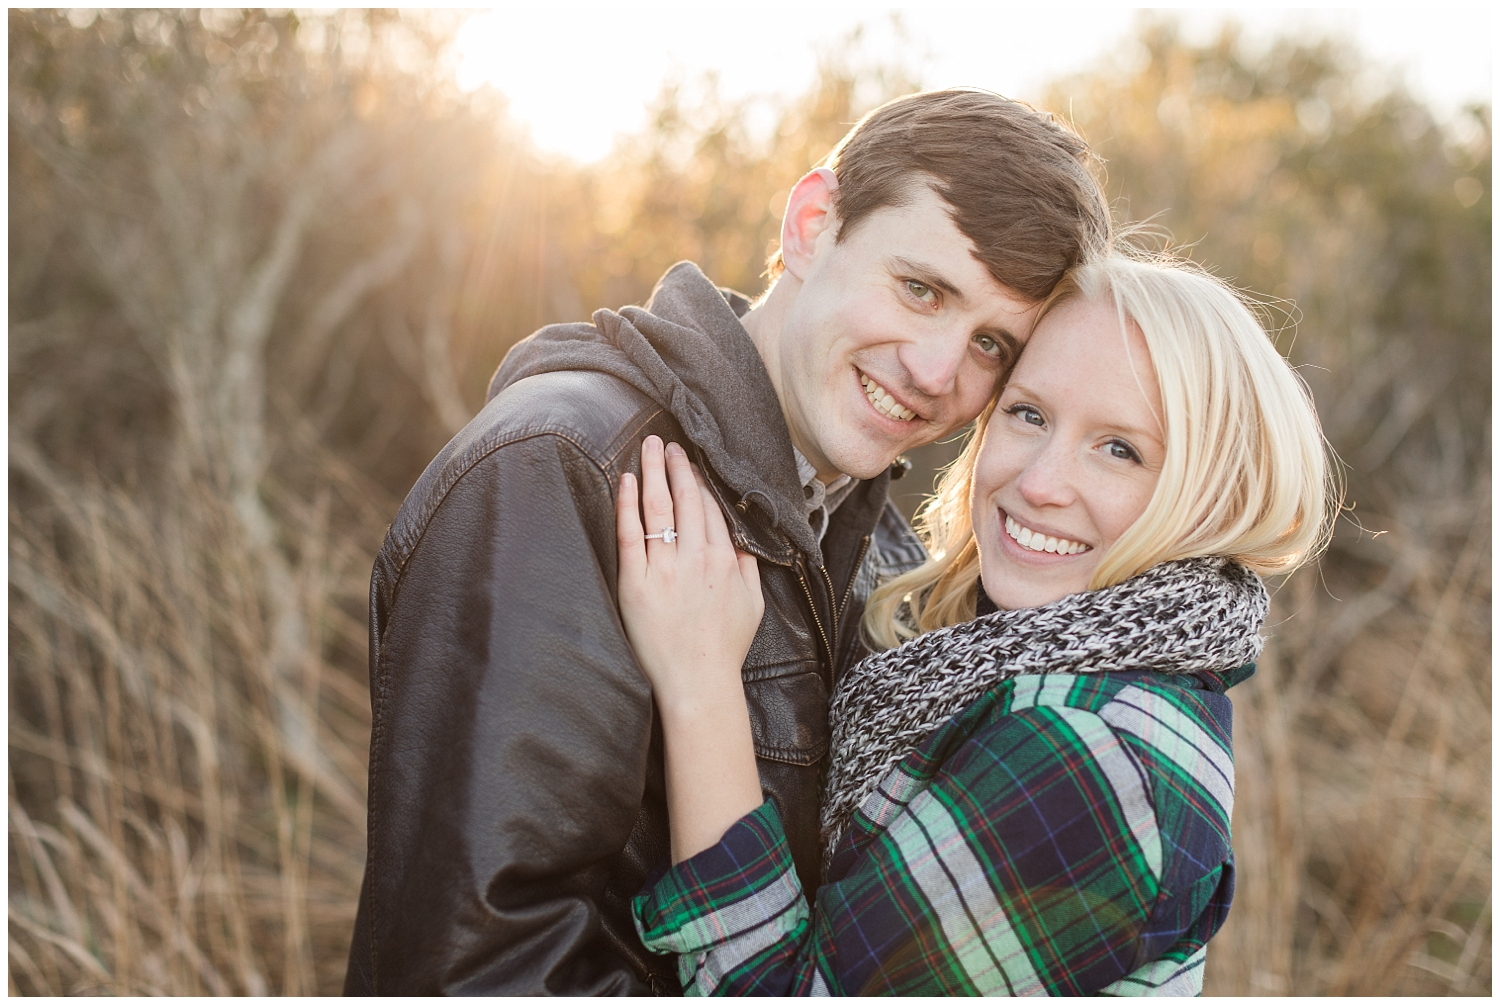 back bay virginia beach engagement session by elovephotos_1092.jpg